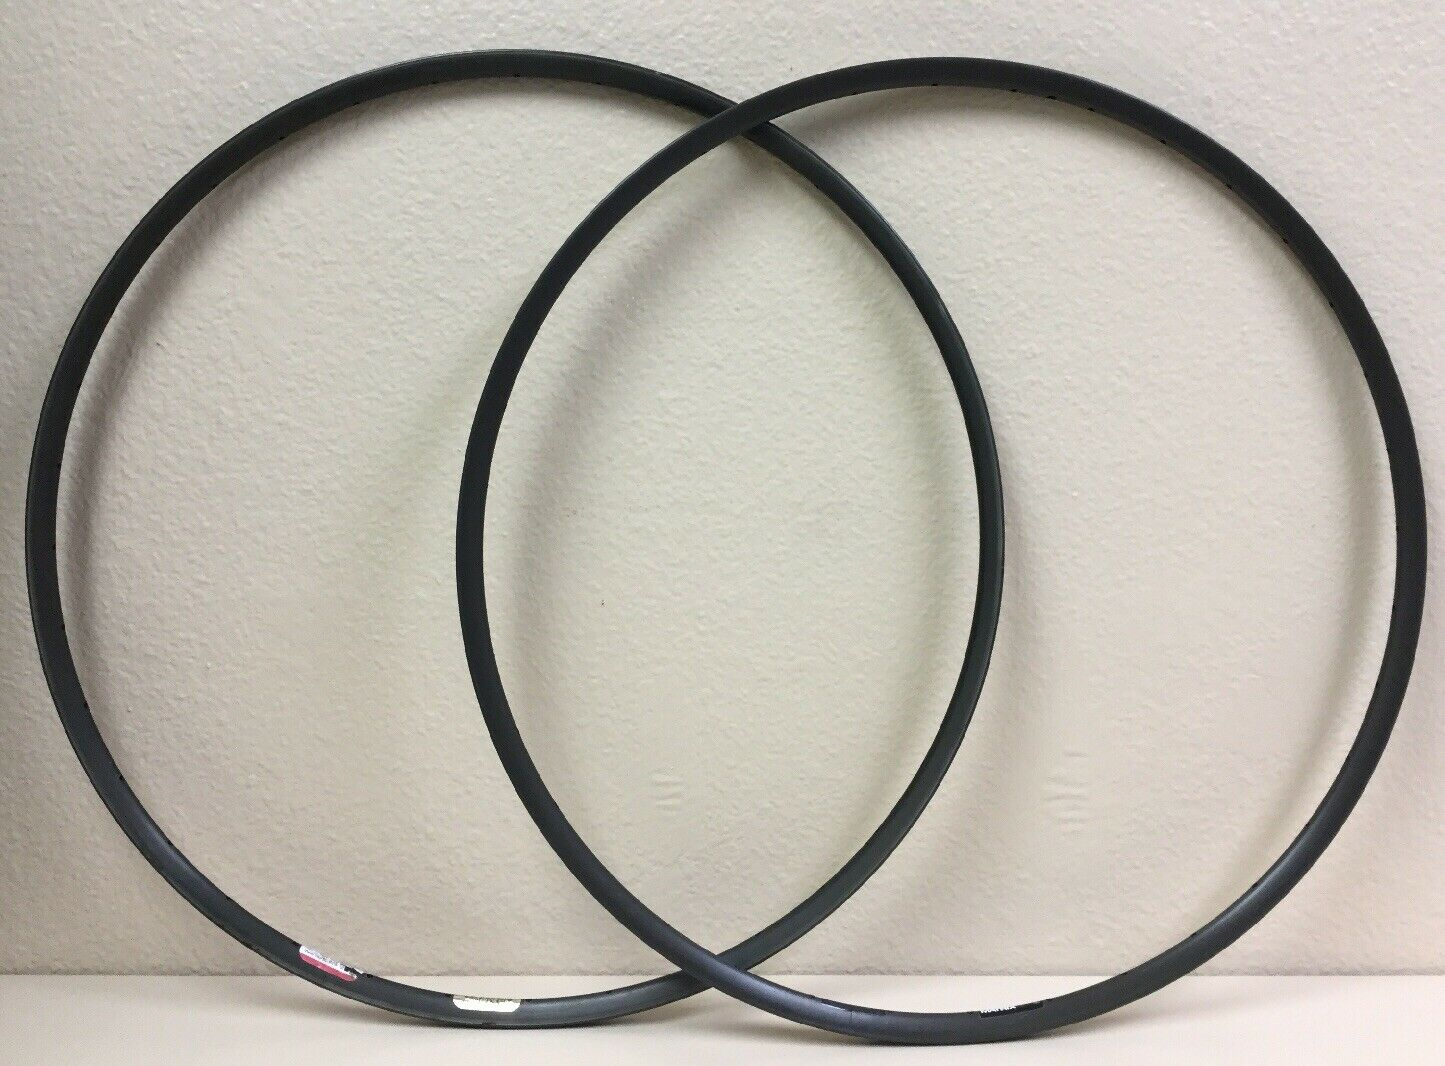 MATRIX ISO TUBULAR RIMS 2 700C 36H